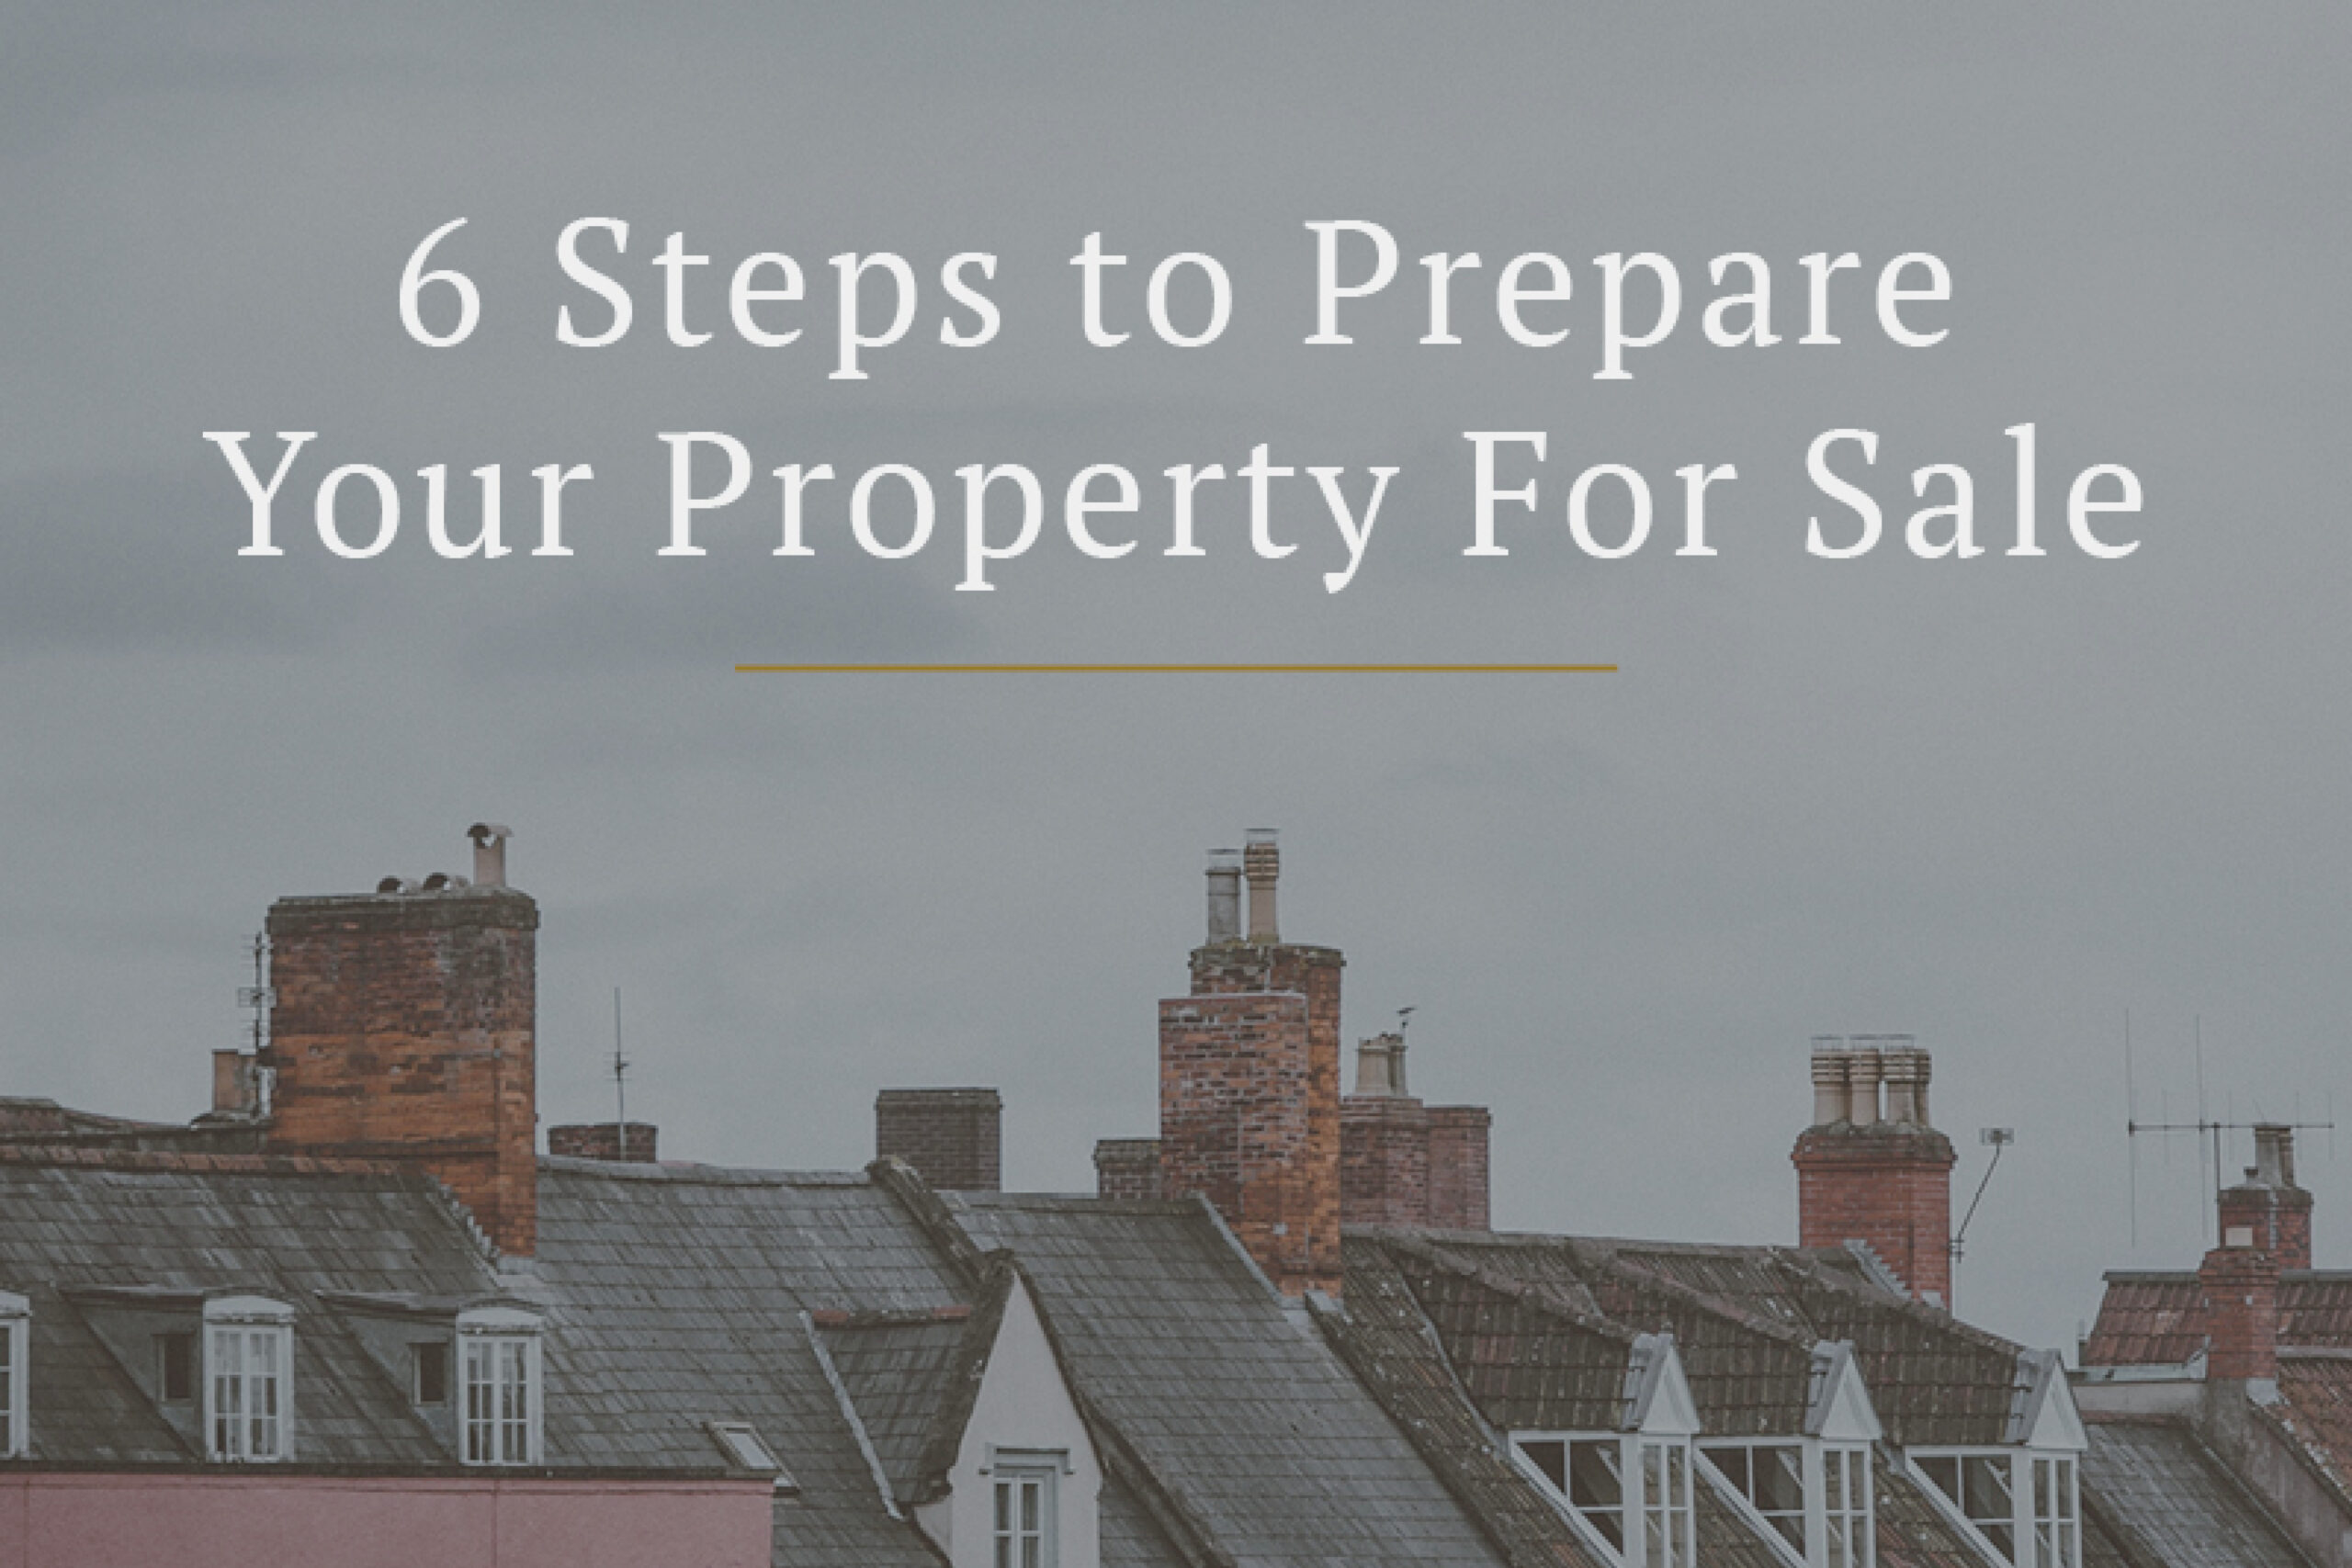 6 Steps to Prepare Your Property for Sale